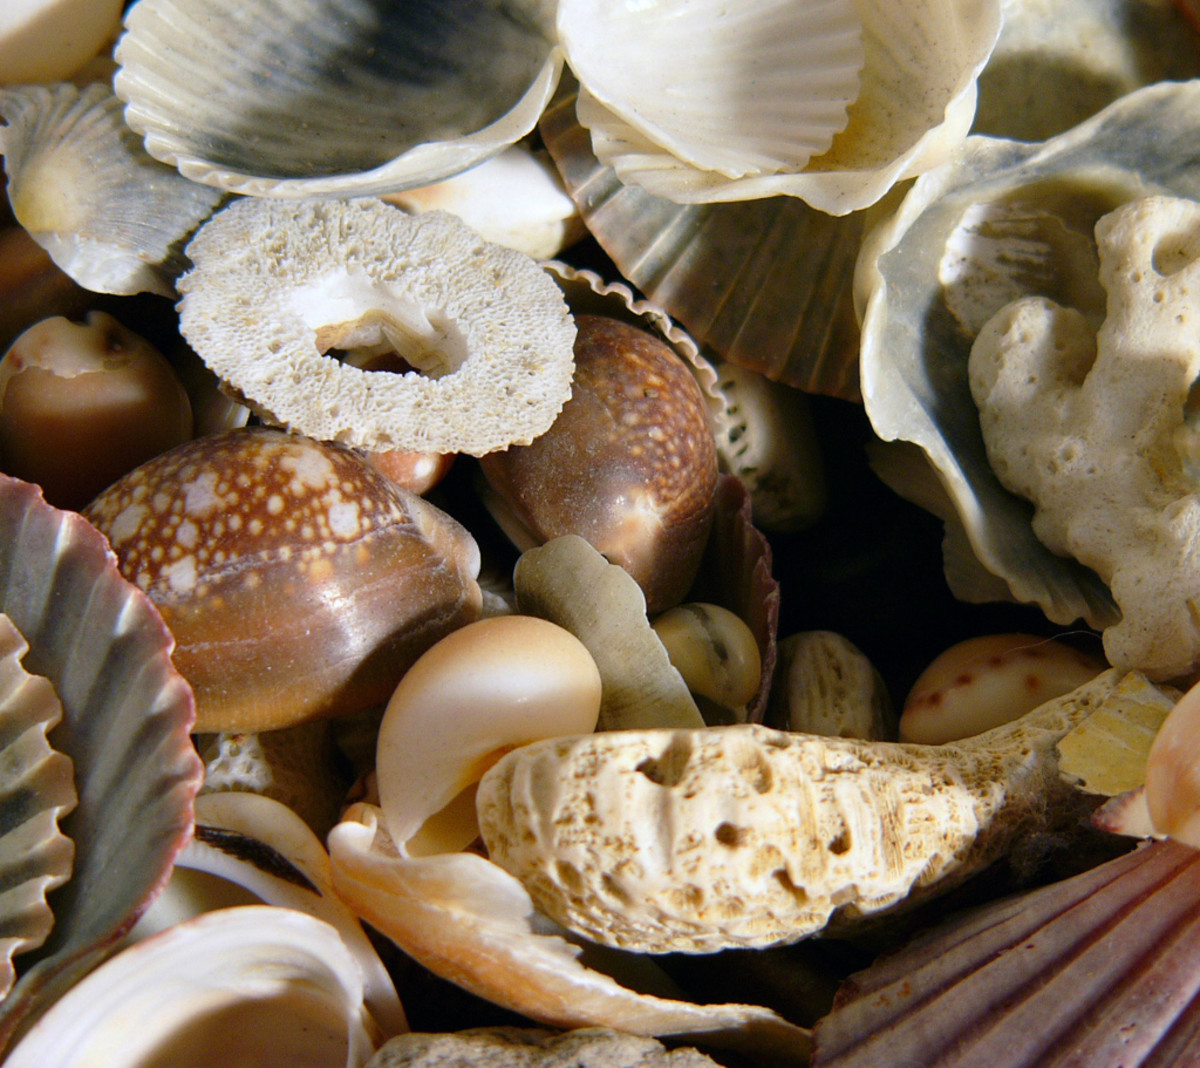 Shells, coral, and sea sponges are sold at craft stores for decorating. Get a good deal and give them a better purpose!